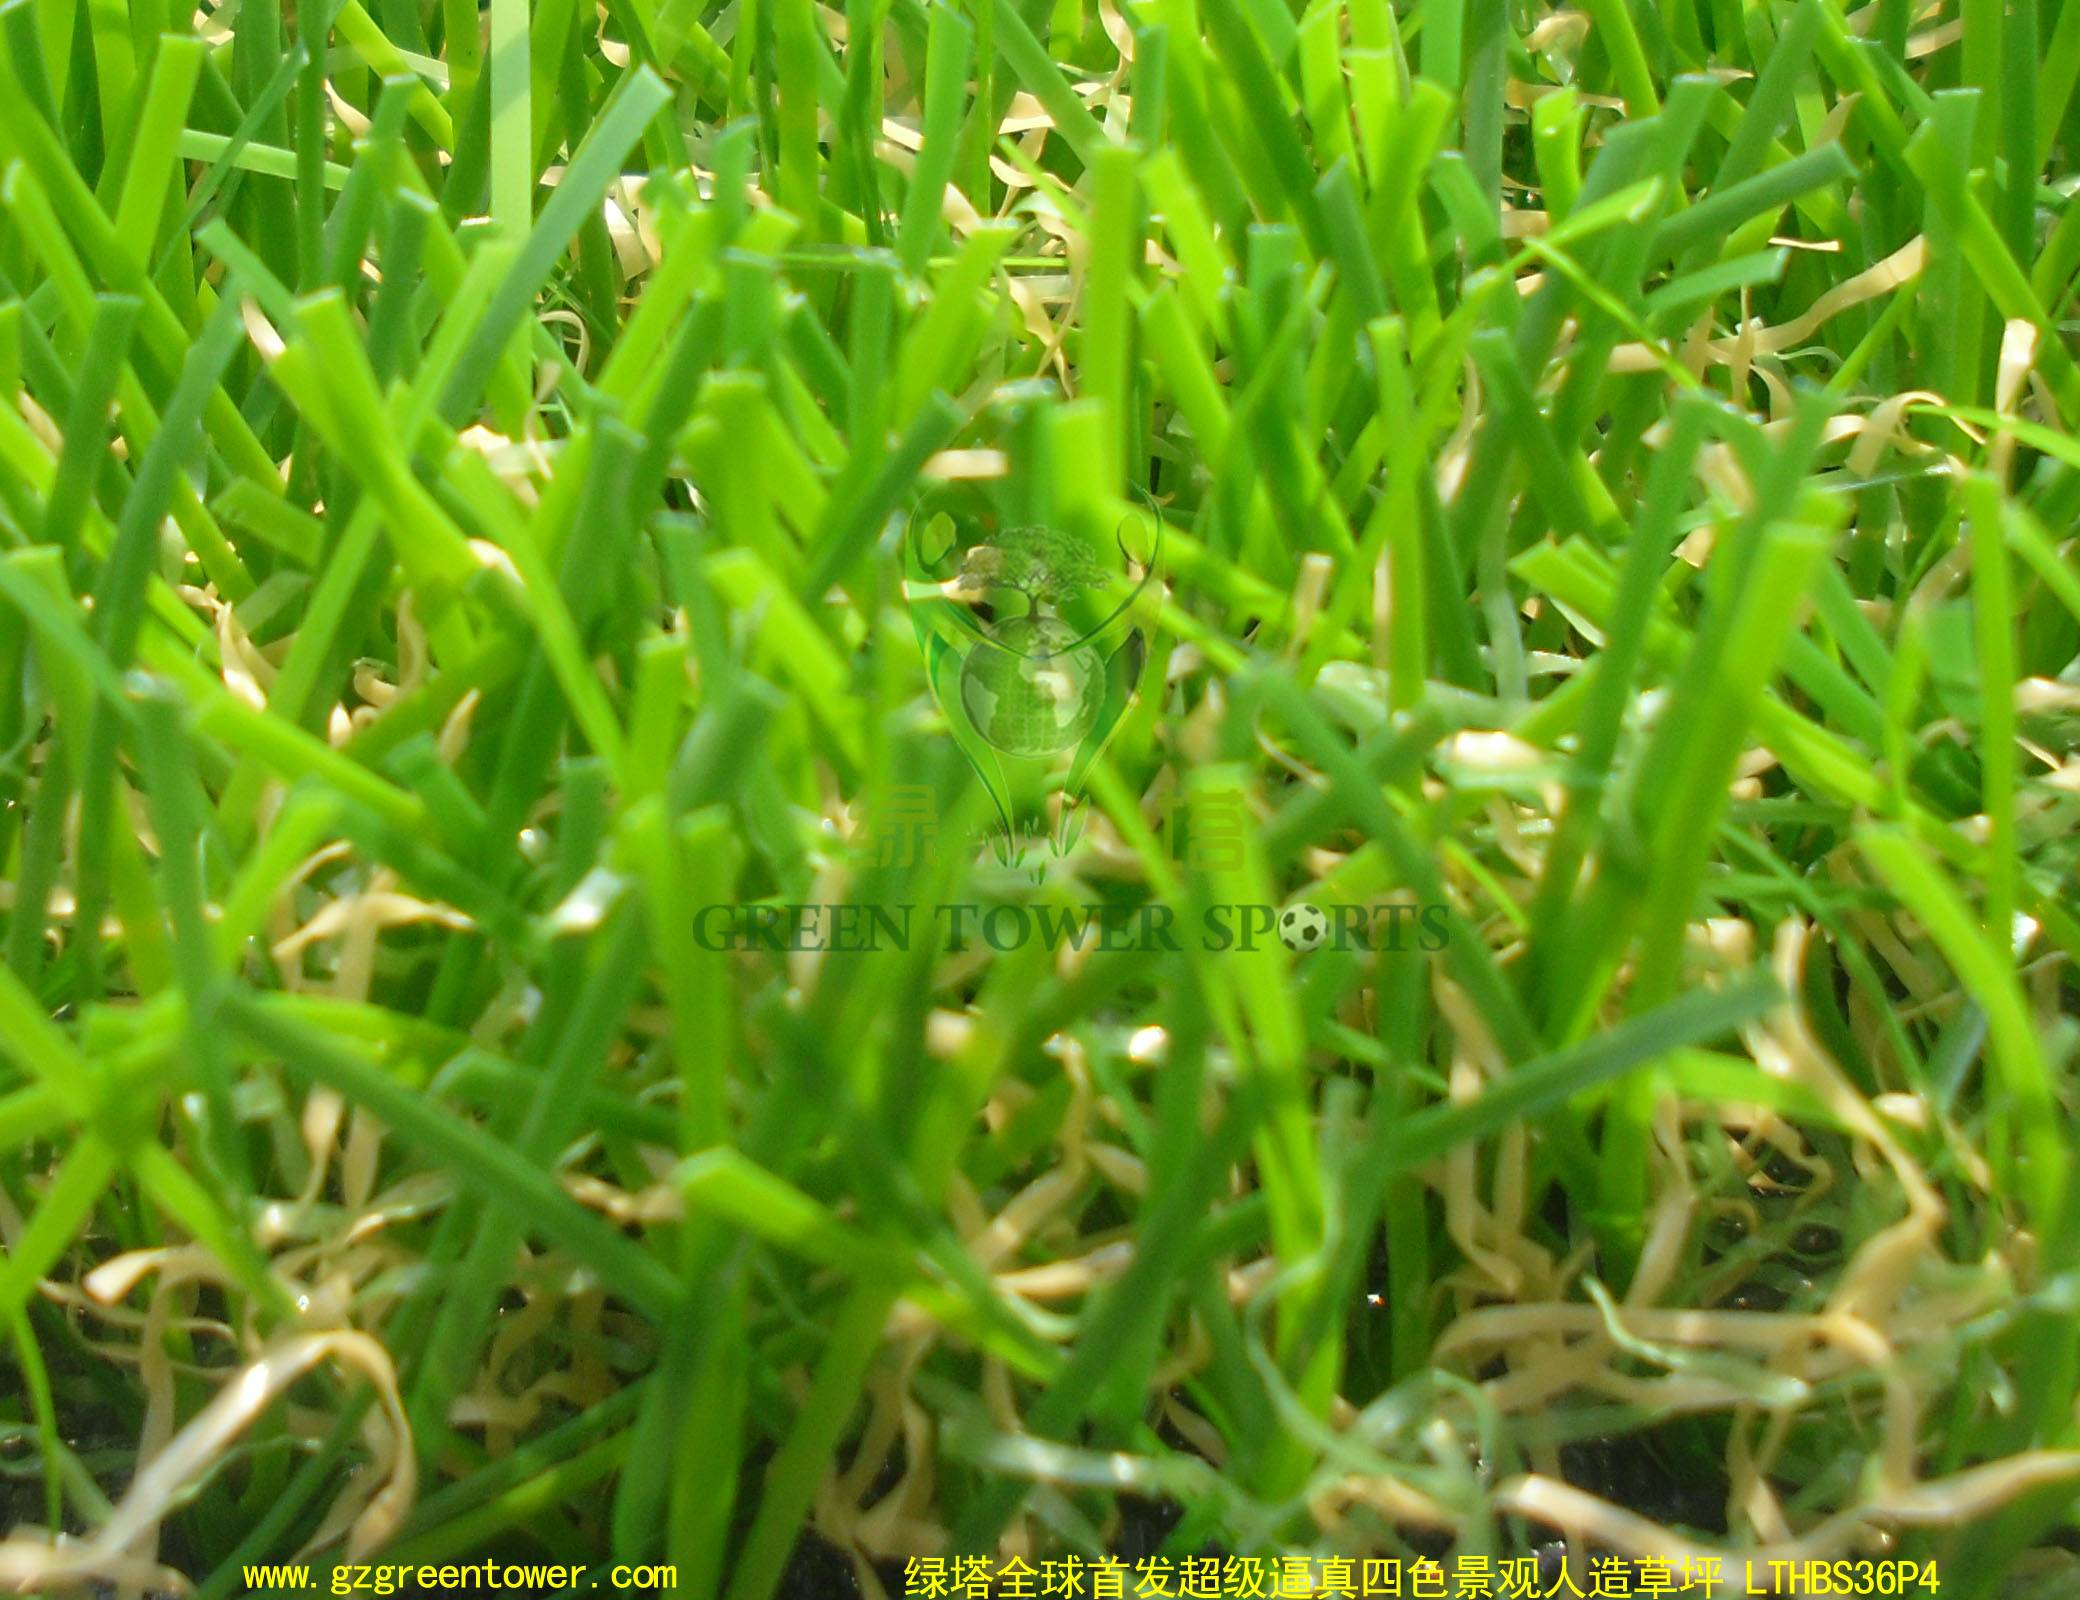 synthetic lawn for garden decoration and sports